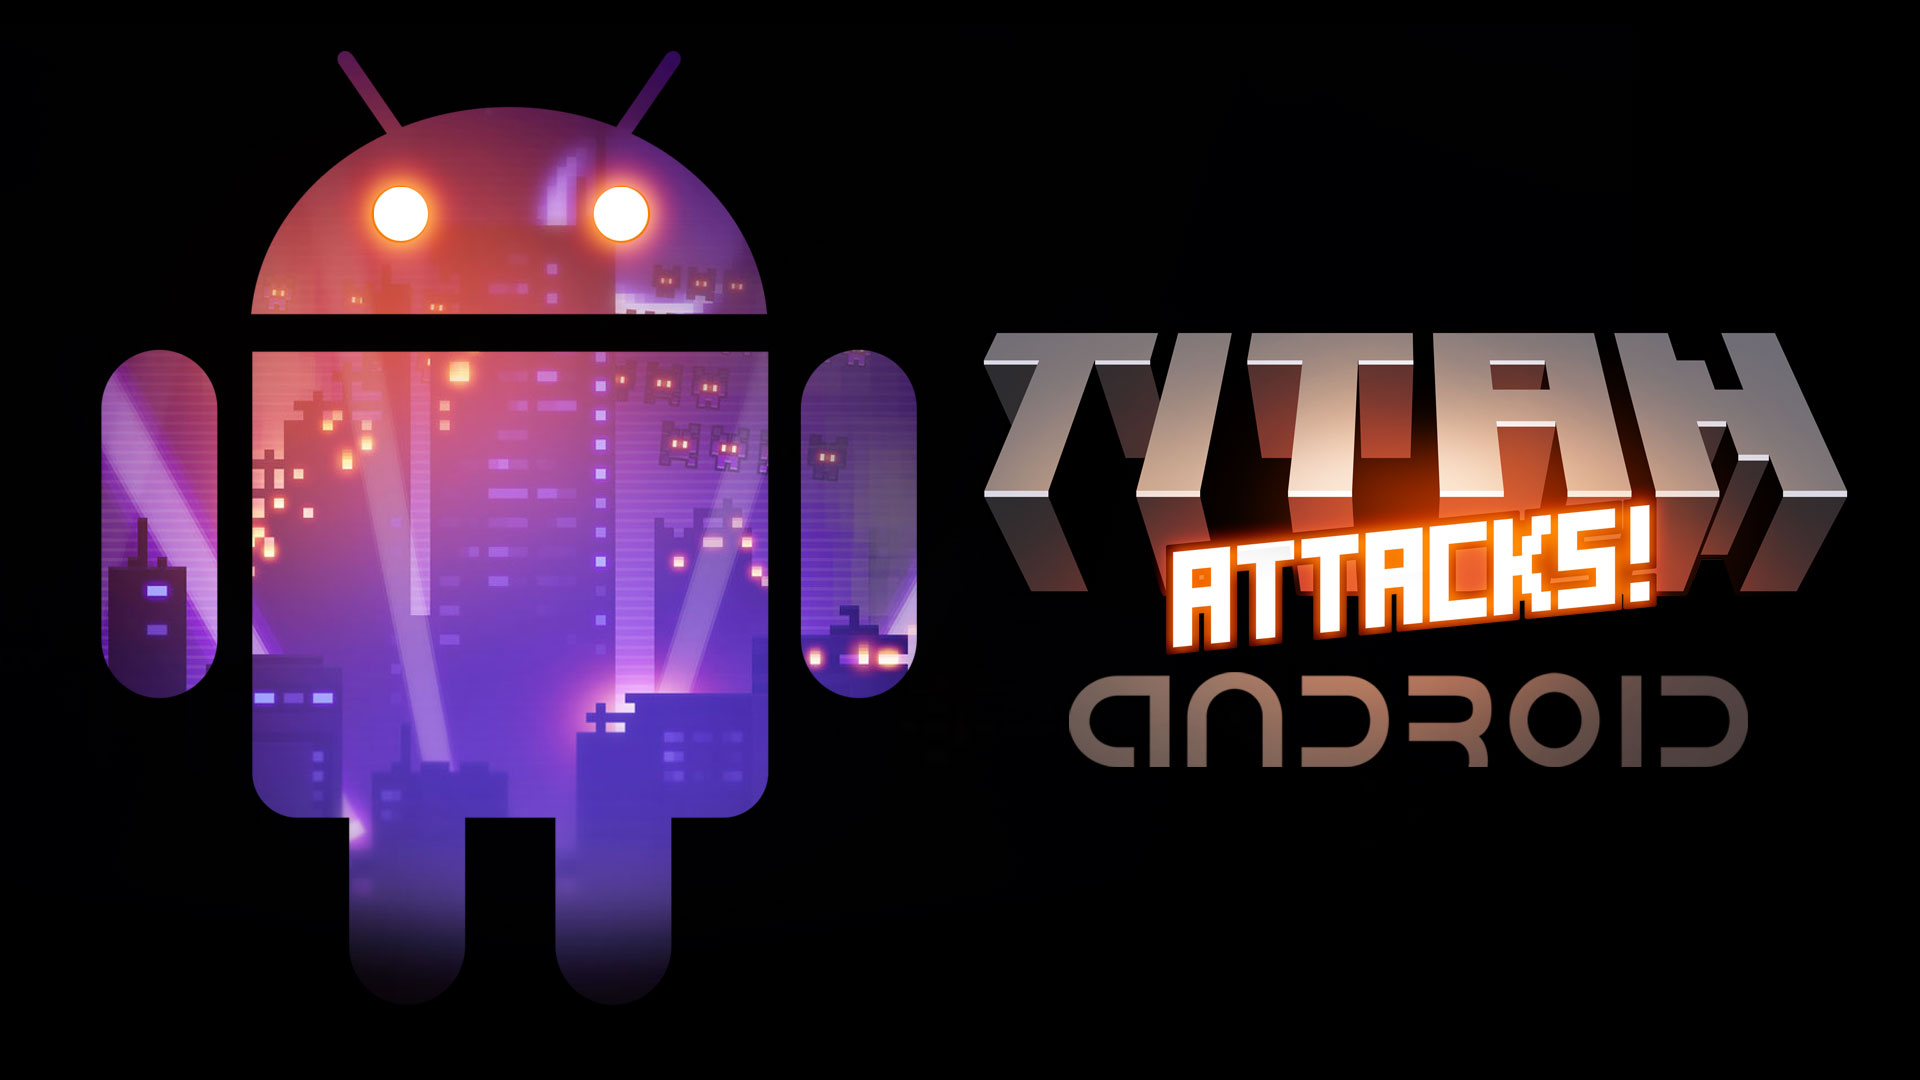 Titan Attacks for Android